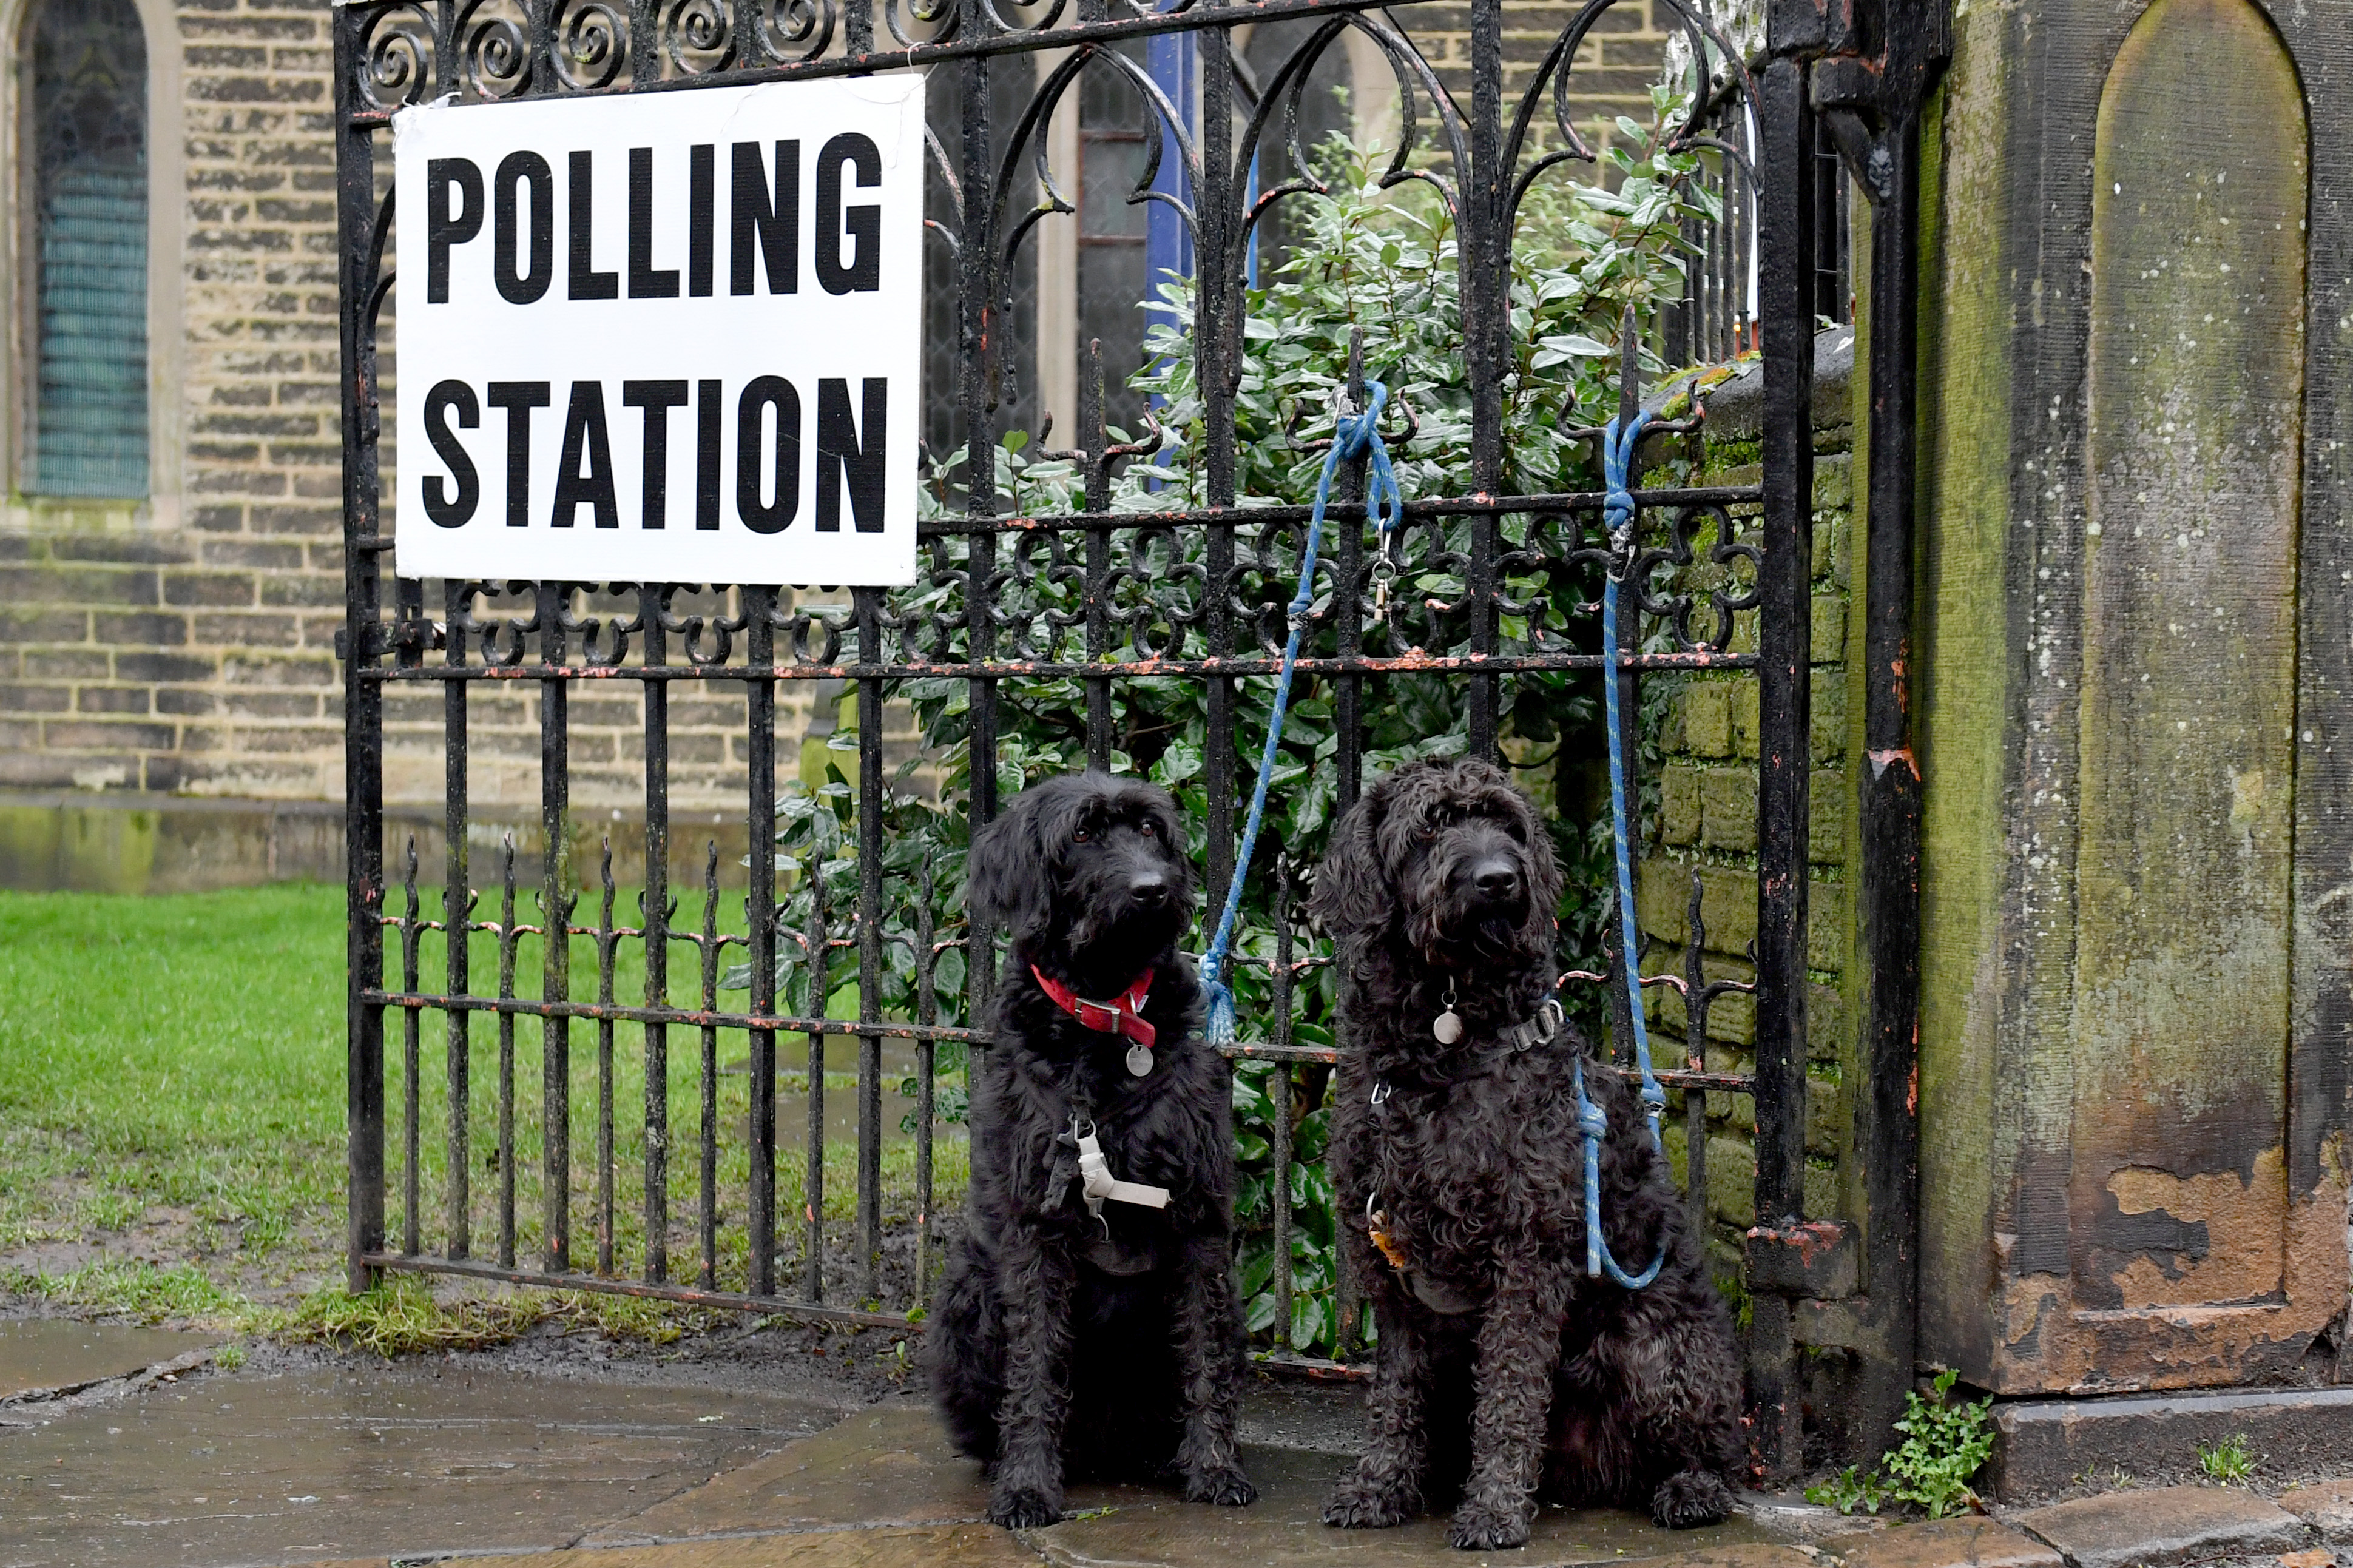 The UK has the best voting tradition: dogs at polling stations